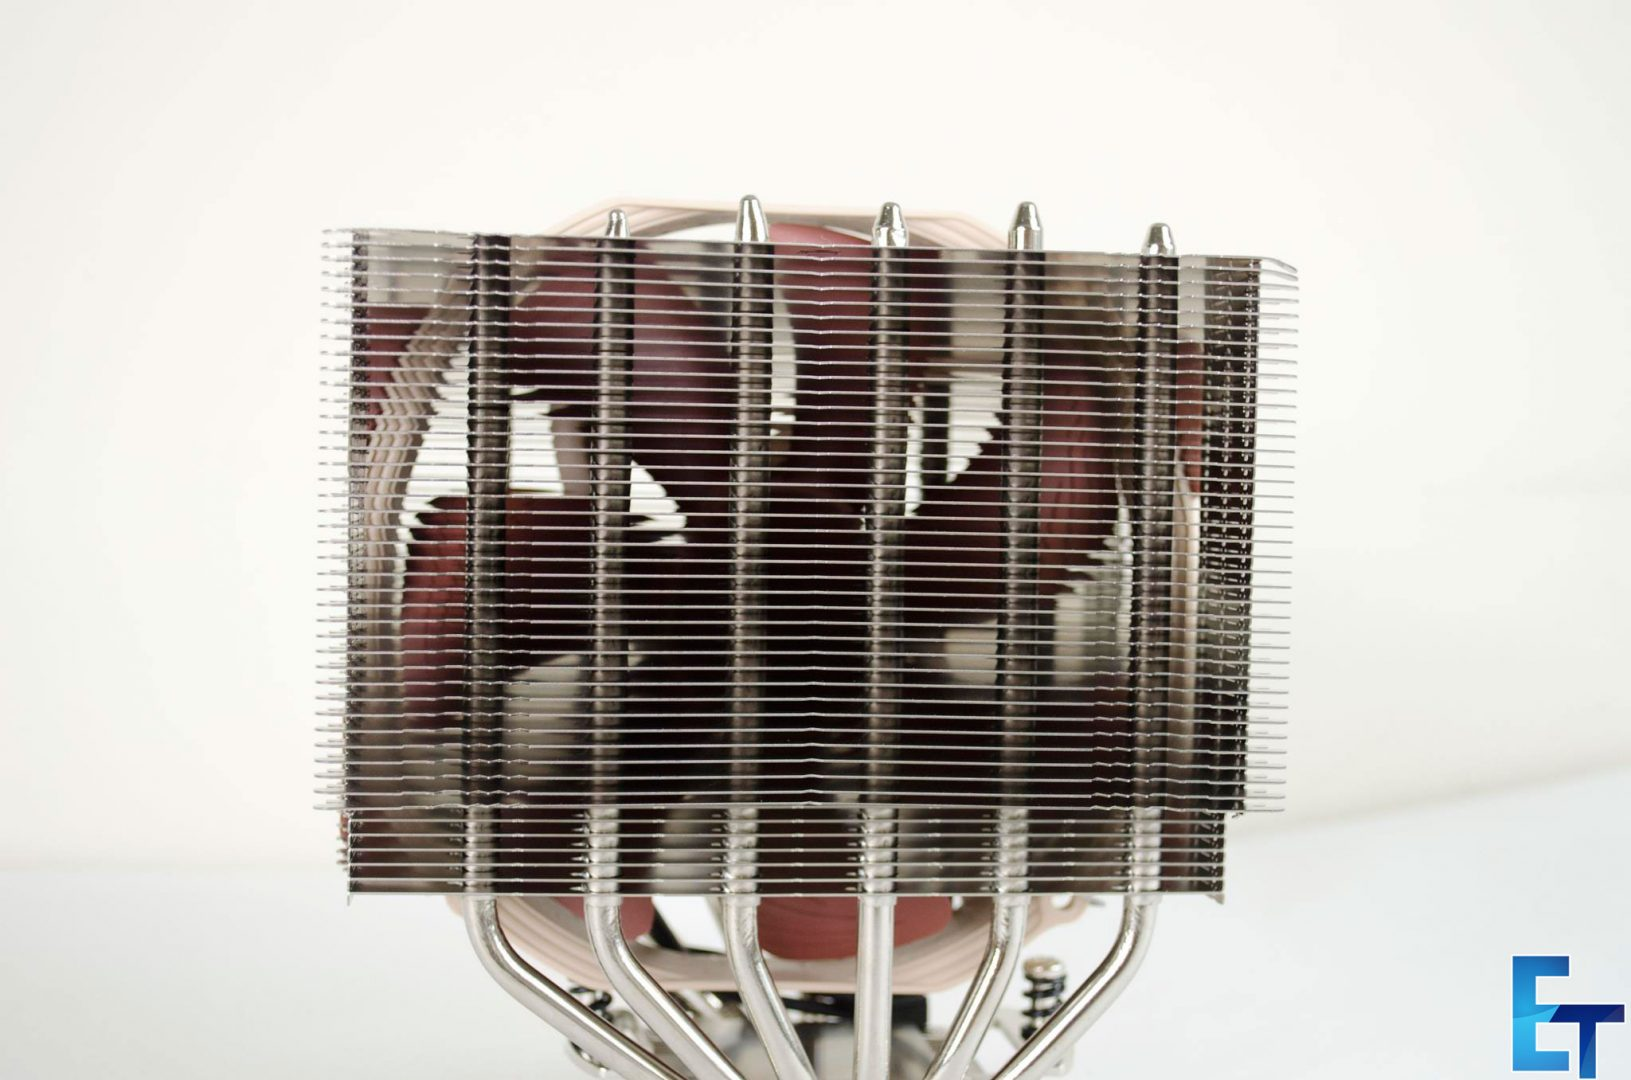 Noctua-NHD15S-CPU-Cooler-Review_7